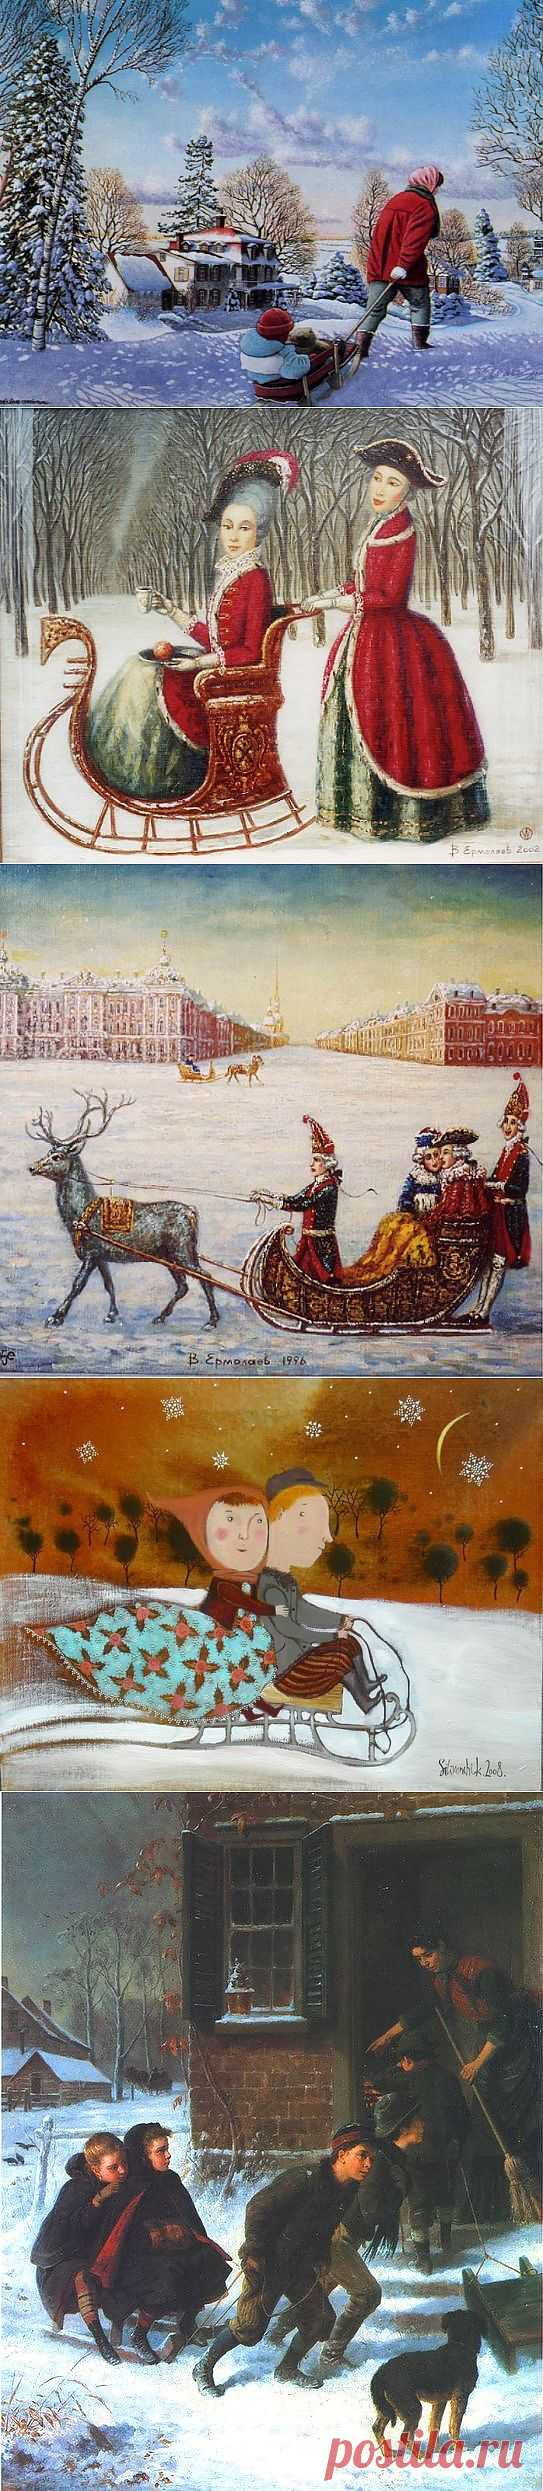 CHILDREN IN PAINTING (PART 99 - WINTER ENTERTAINMENTS. DRIVING ON SLEDGE).